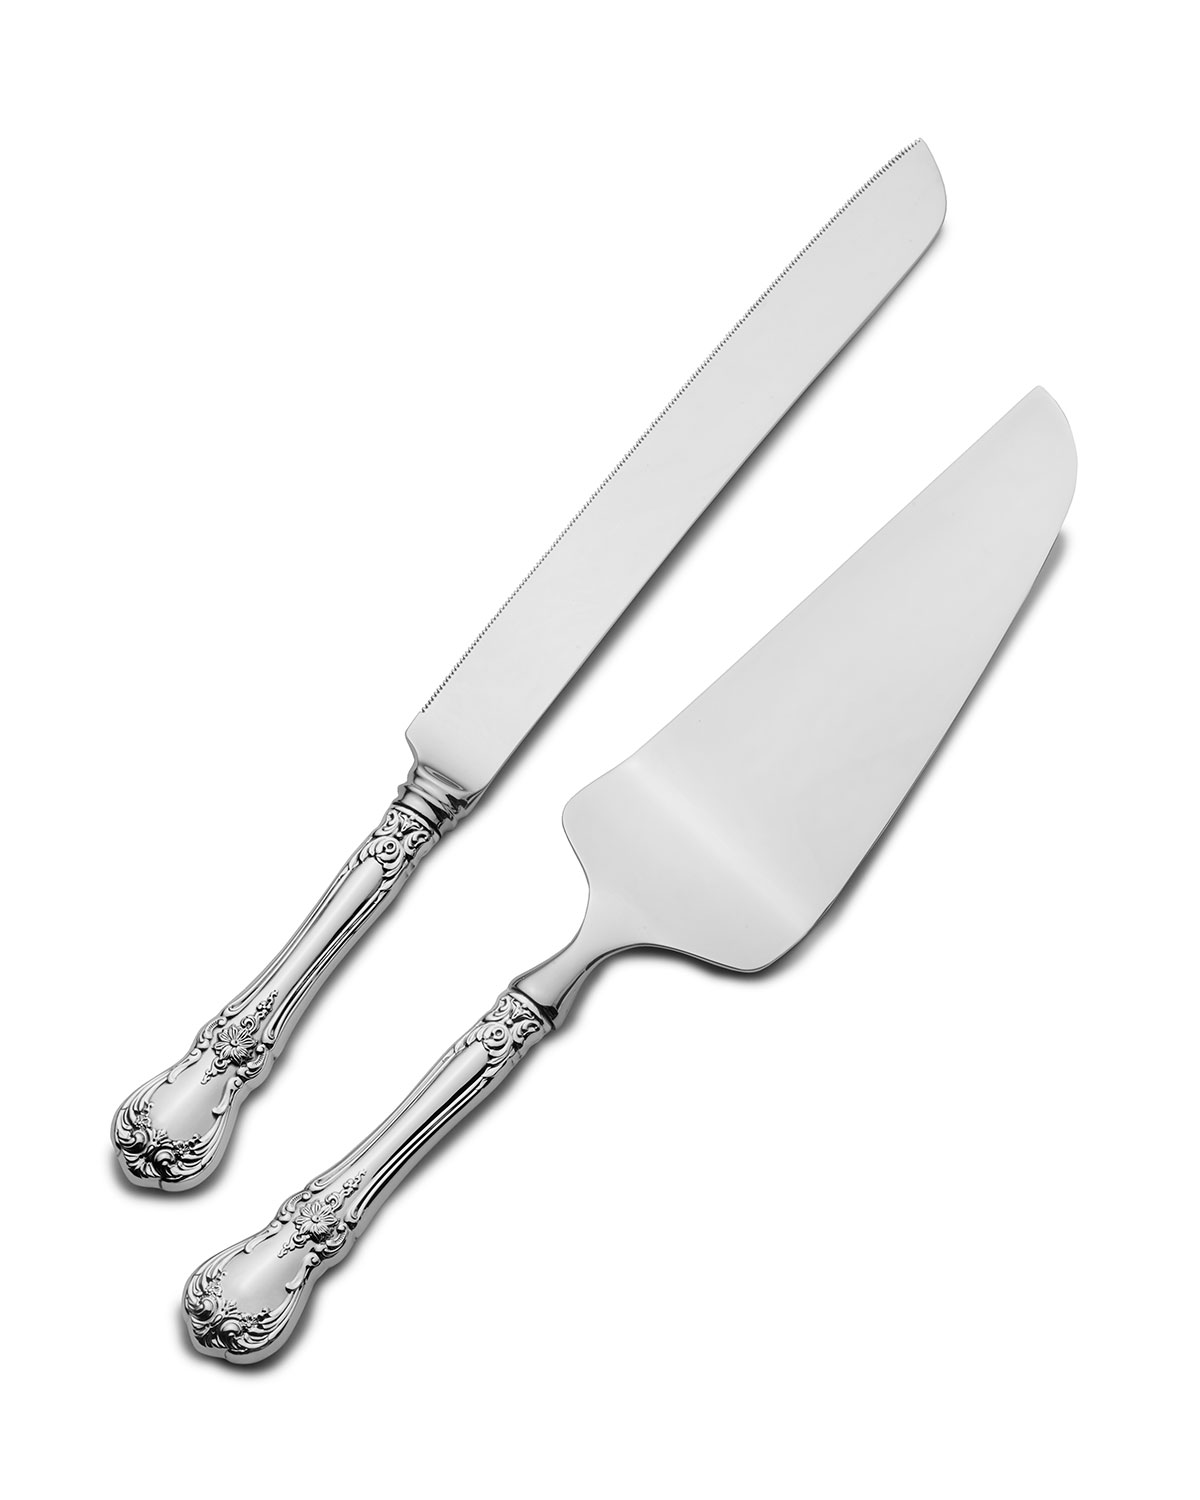 Towle Silversmiths Old Master 2-Piece Cake Serving Set